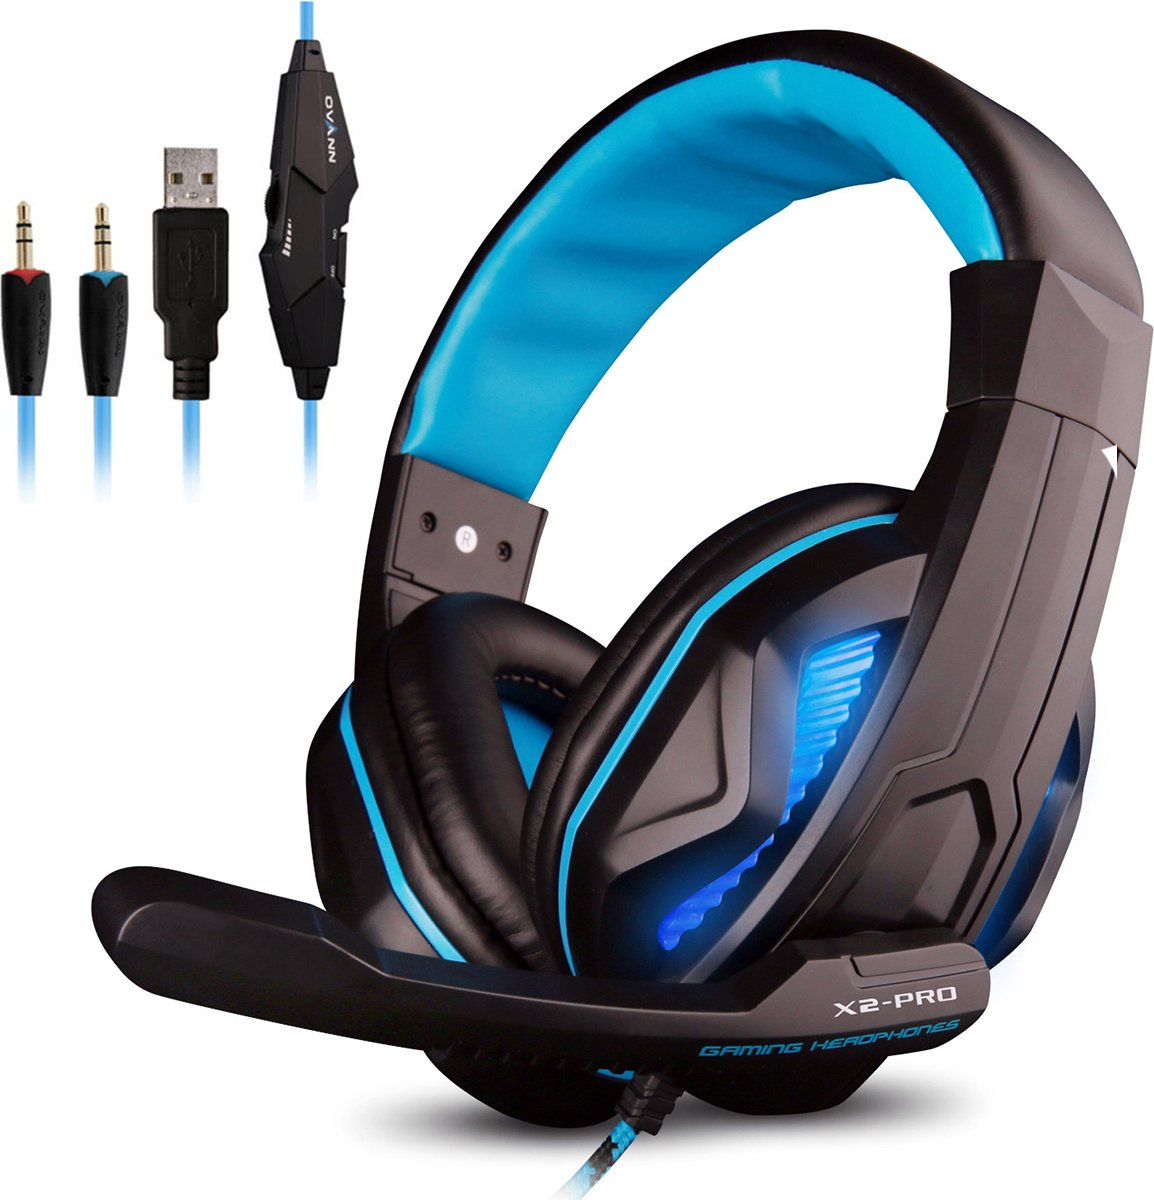 Ovan X2-Pro Over-ear Game Hoofdtelefoon Gaming Headset - Stereo Surround Koptelefoon met Microfoon, Ruisonderdrukking, Volumeregeling en LED verlichting - voor PC, Mac, iPad, Smartphones, PS4, Xbox One, Nintendo Switch, 3DS, etc.